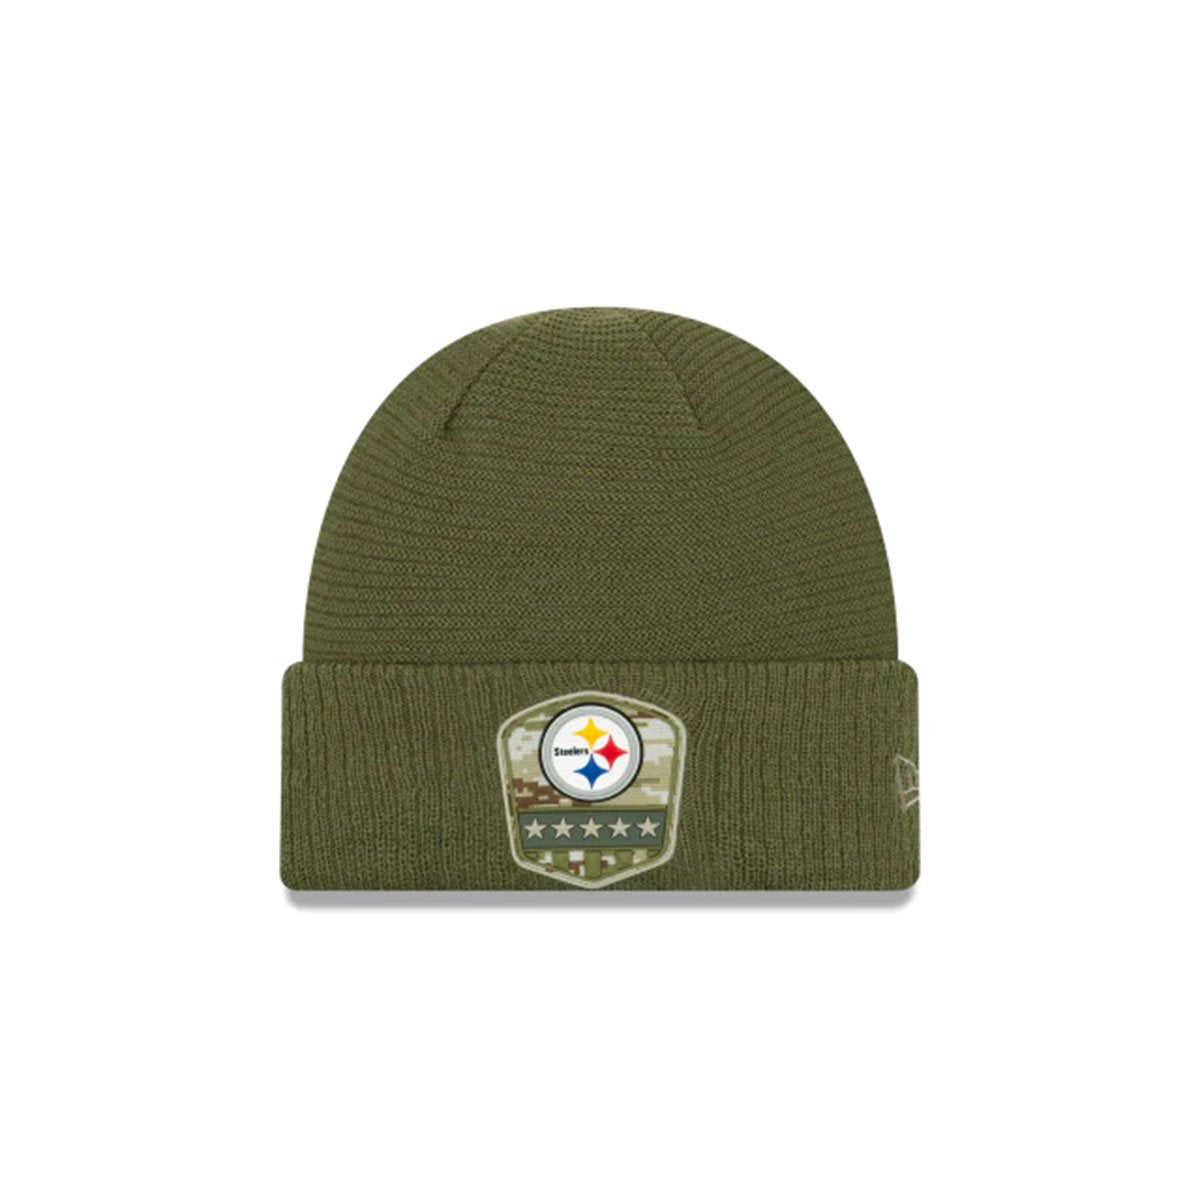 PITTSBURGH STEELERS SALUTE TO SERVICE CUFF KNIT GREEN/WHITE